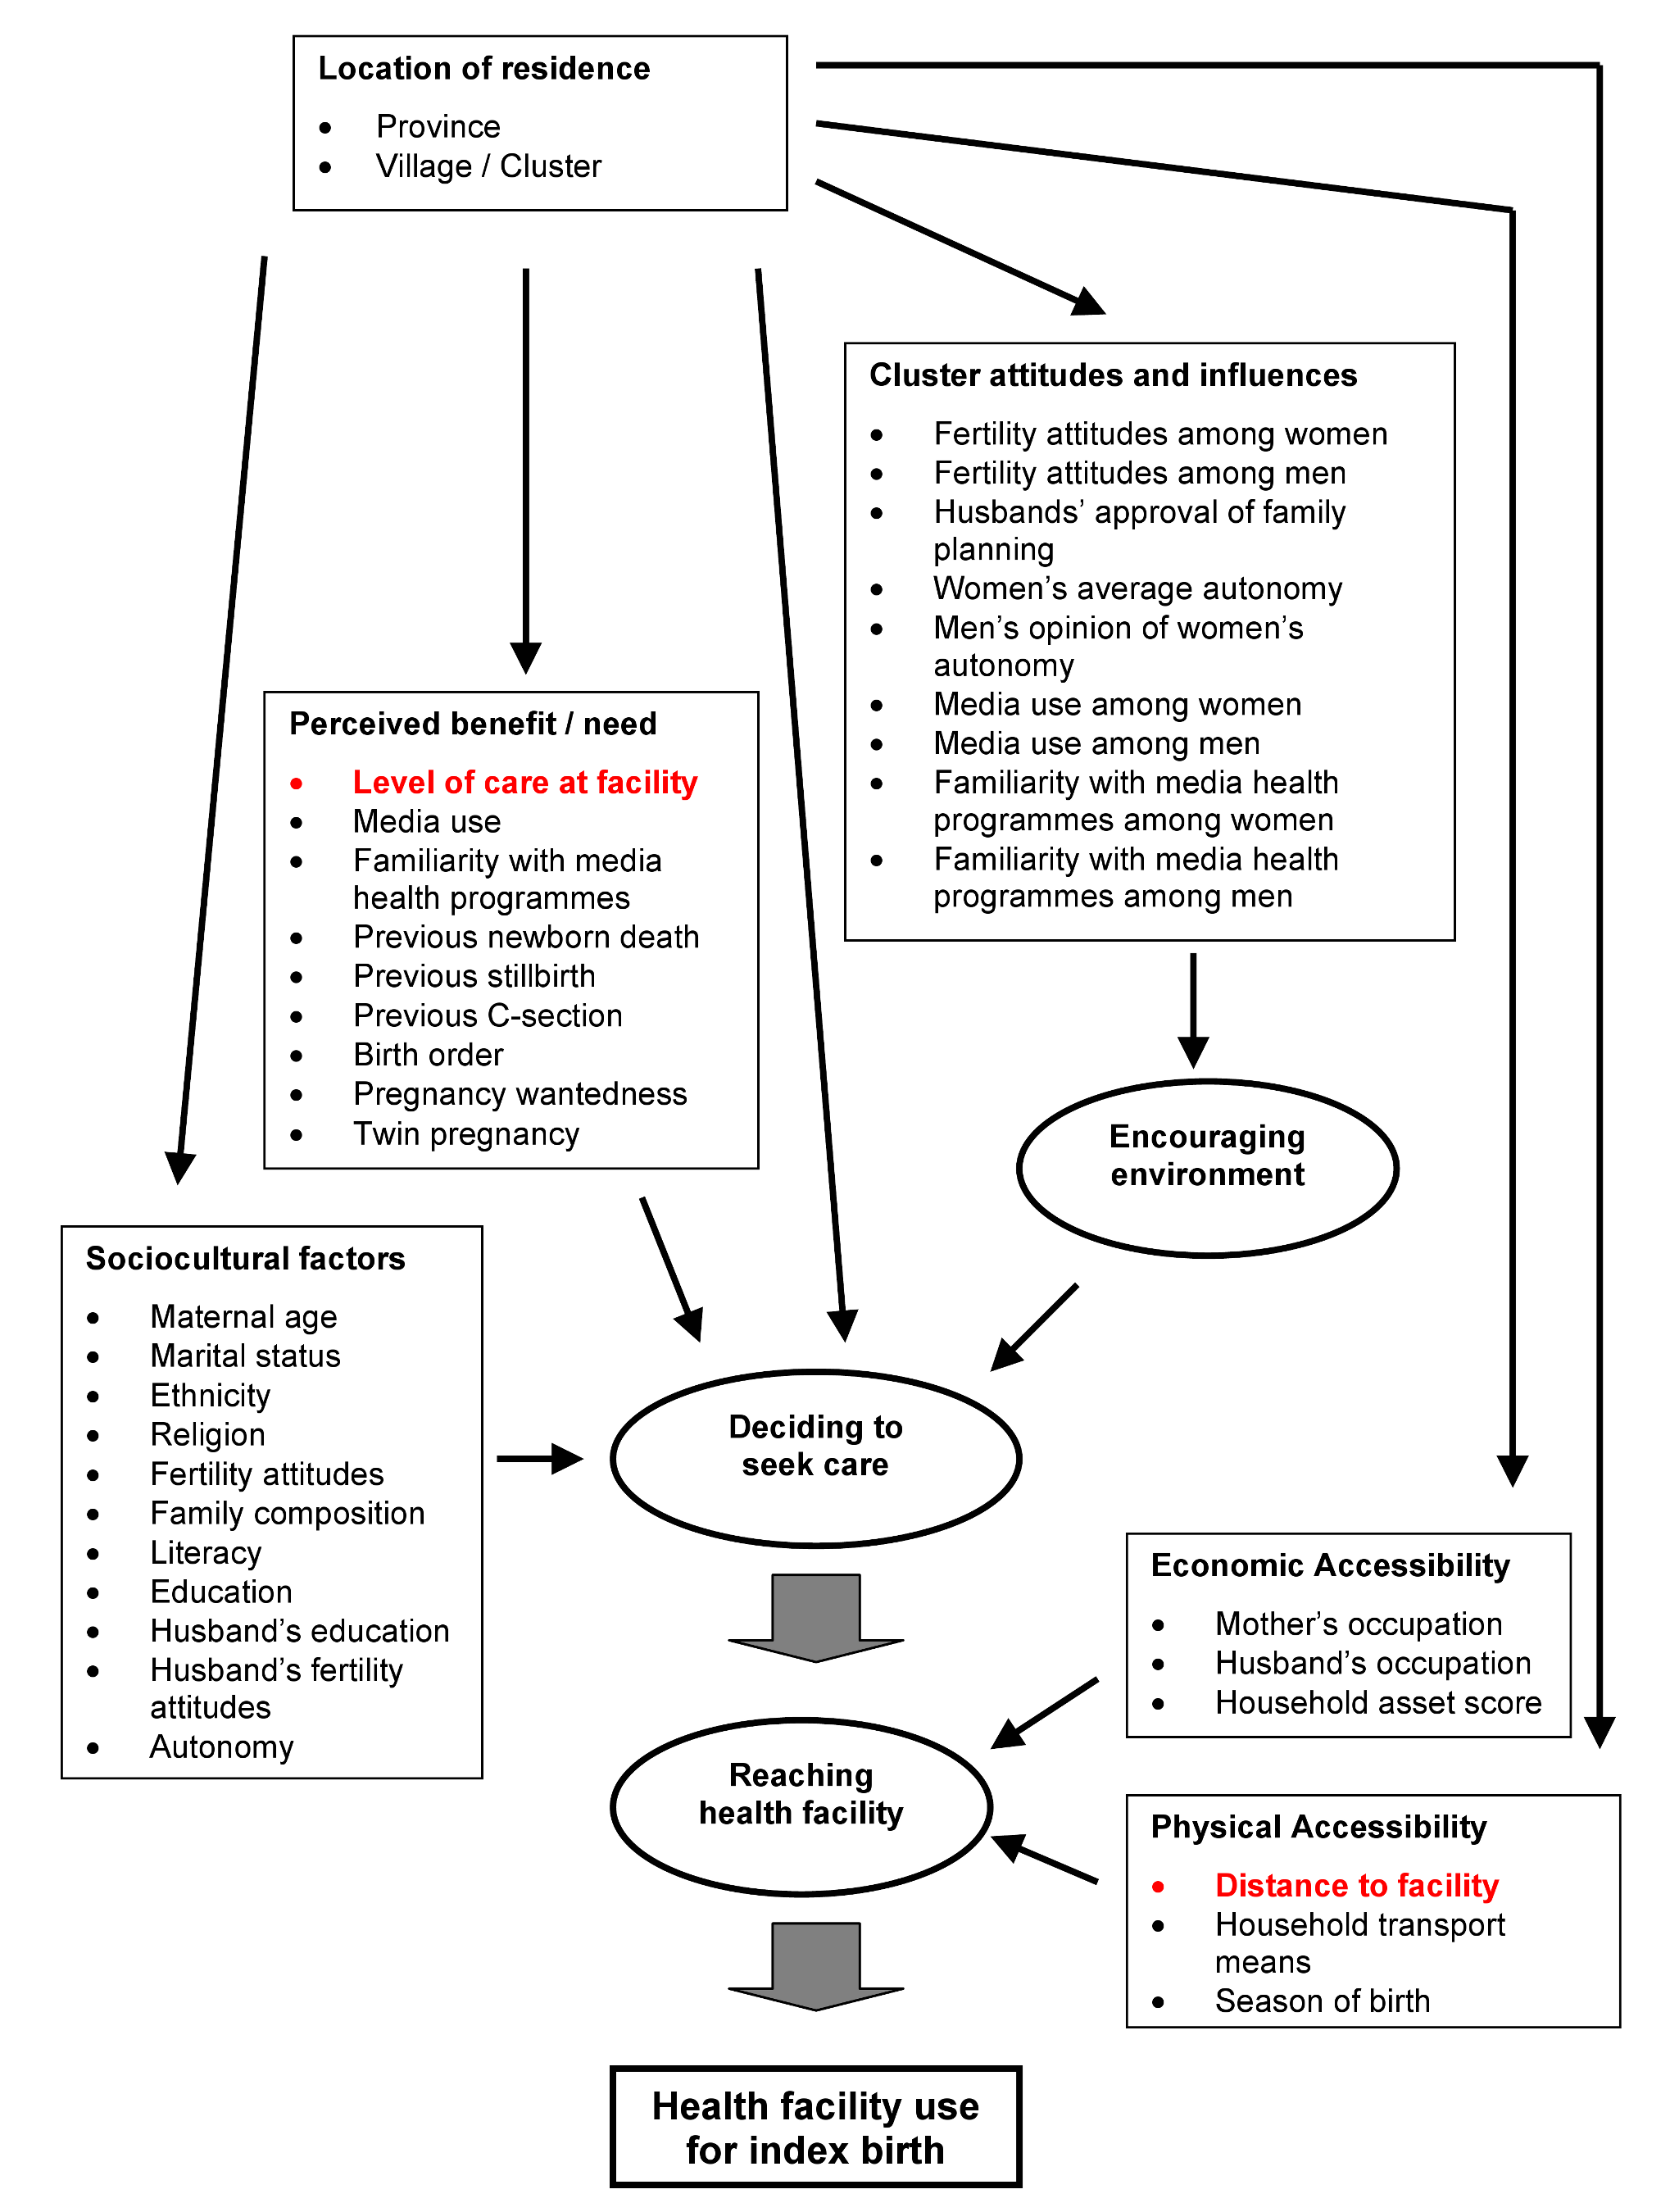 Conceptual framework of influences on health service use.